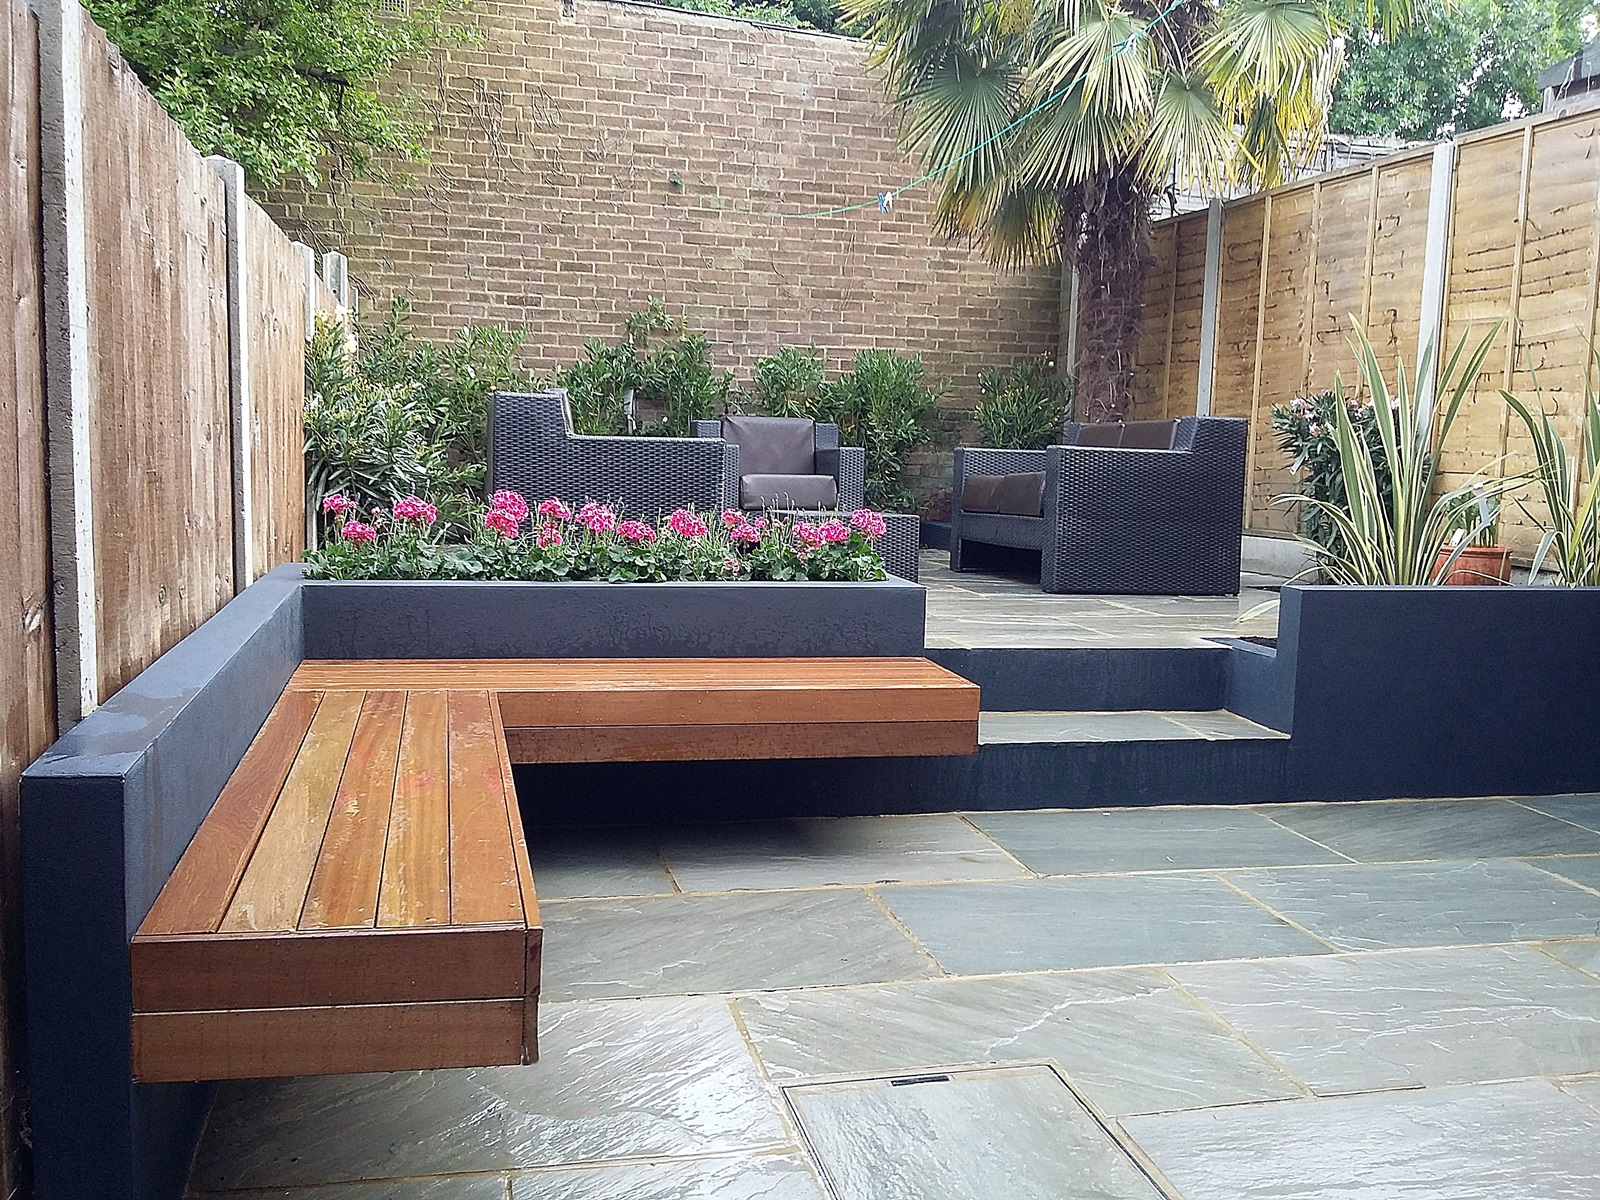 Modern garden design london natural sandstone paving patio for Contemporary garden designs and ideas